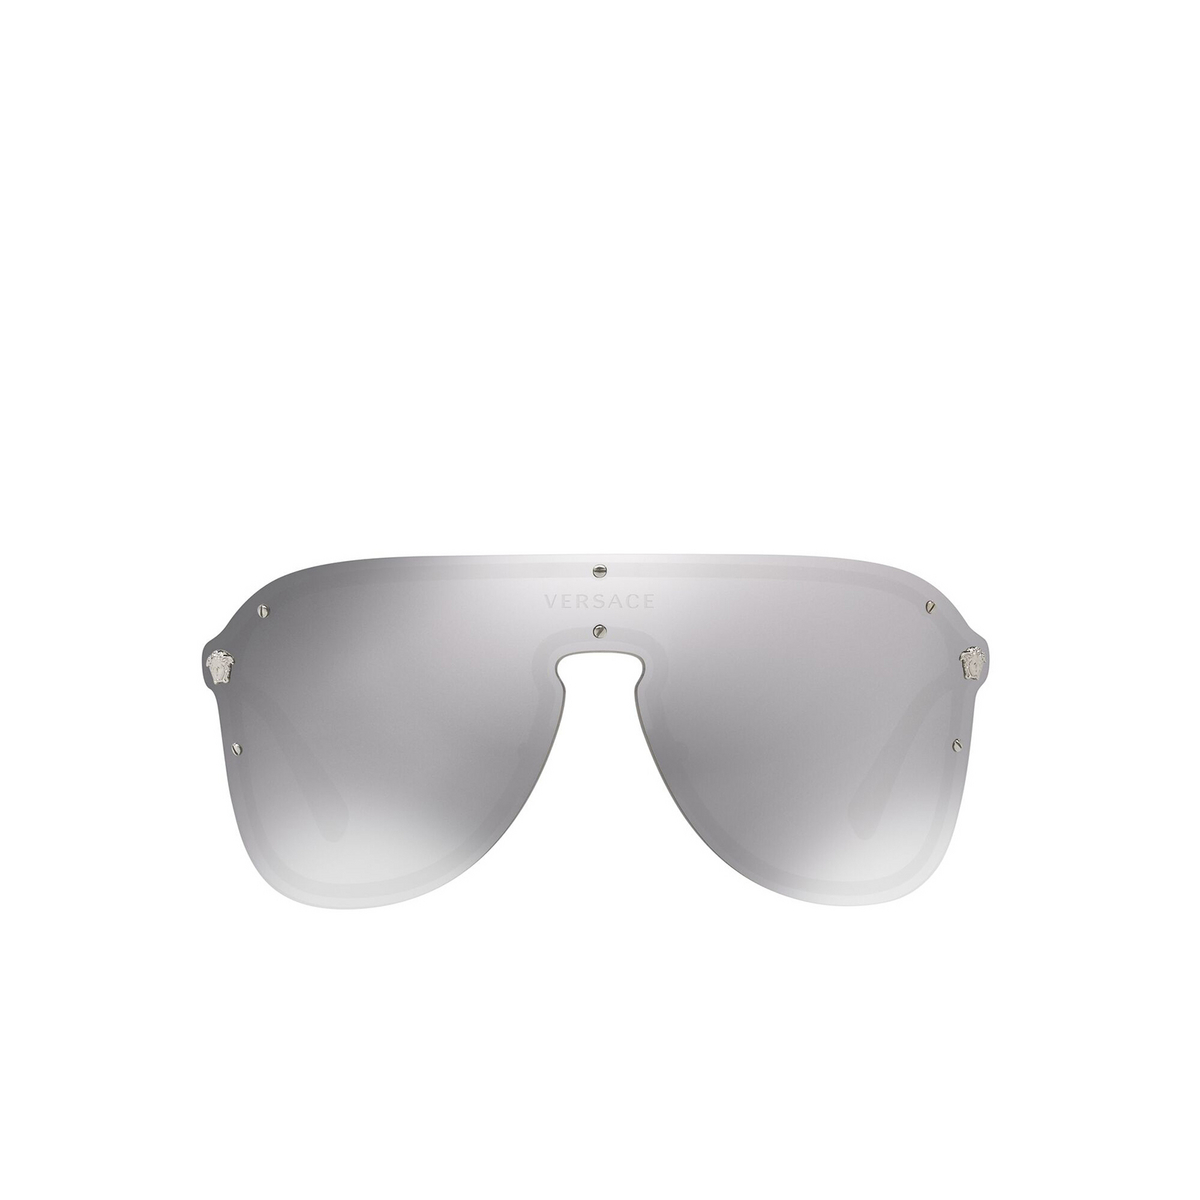 Versace® Aviator Sunglasses: VE2180 color Silver 10006G - front view.